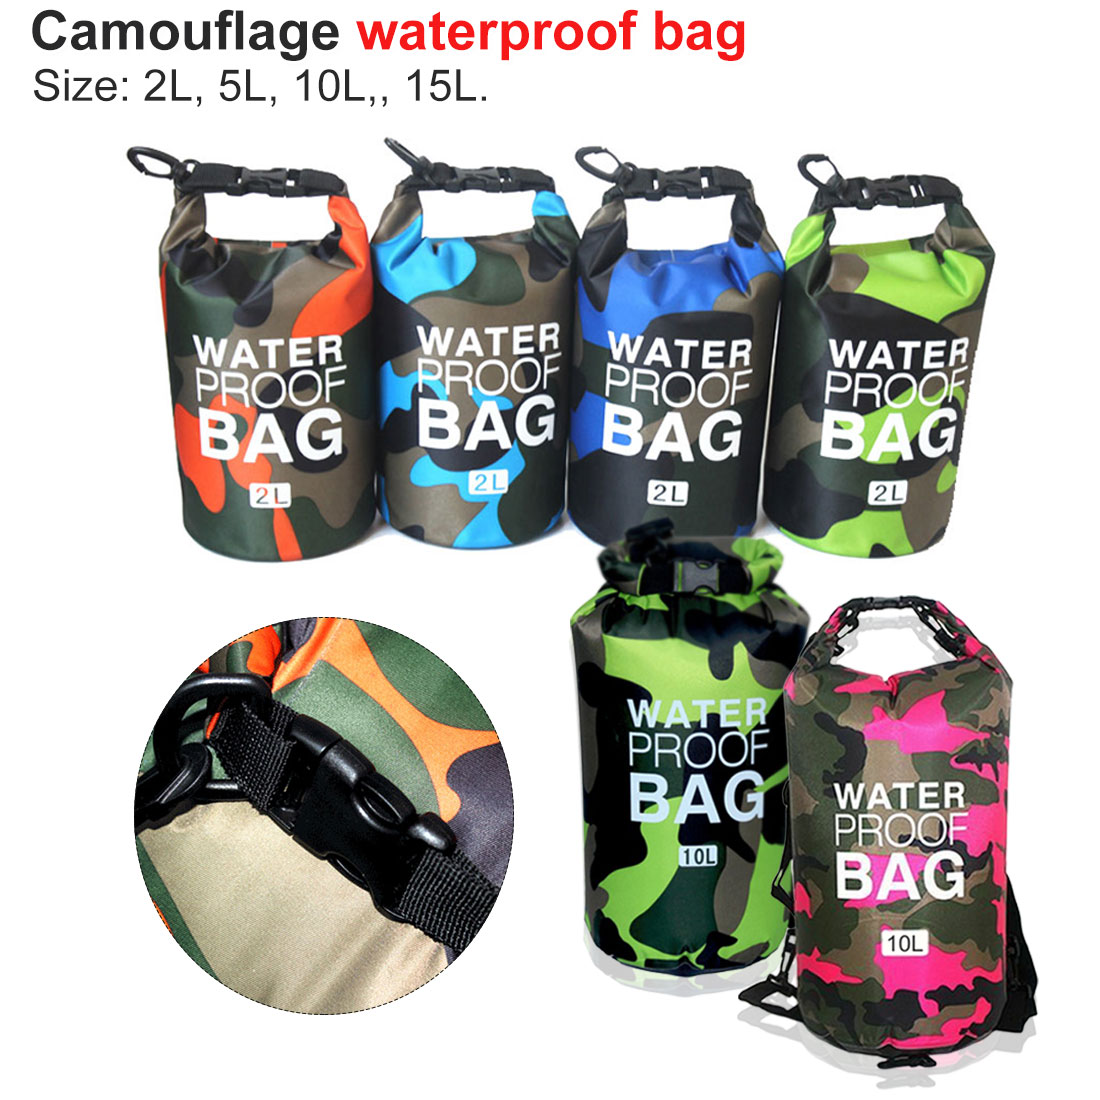 Swimming River Trekking Bags 2/5/10/15L Outdoor Camouflage Waterproof Dry Bags Portable Rafting Diving PVC